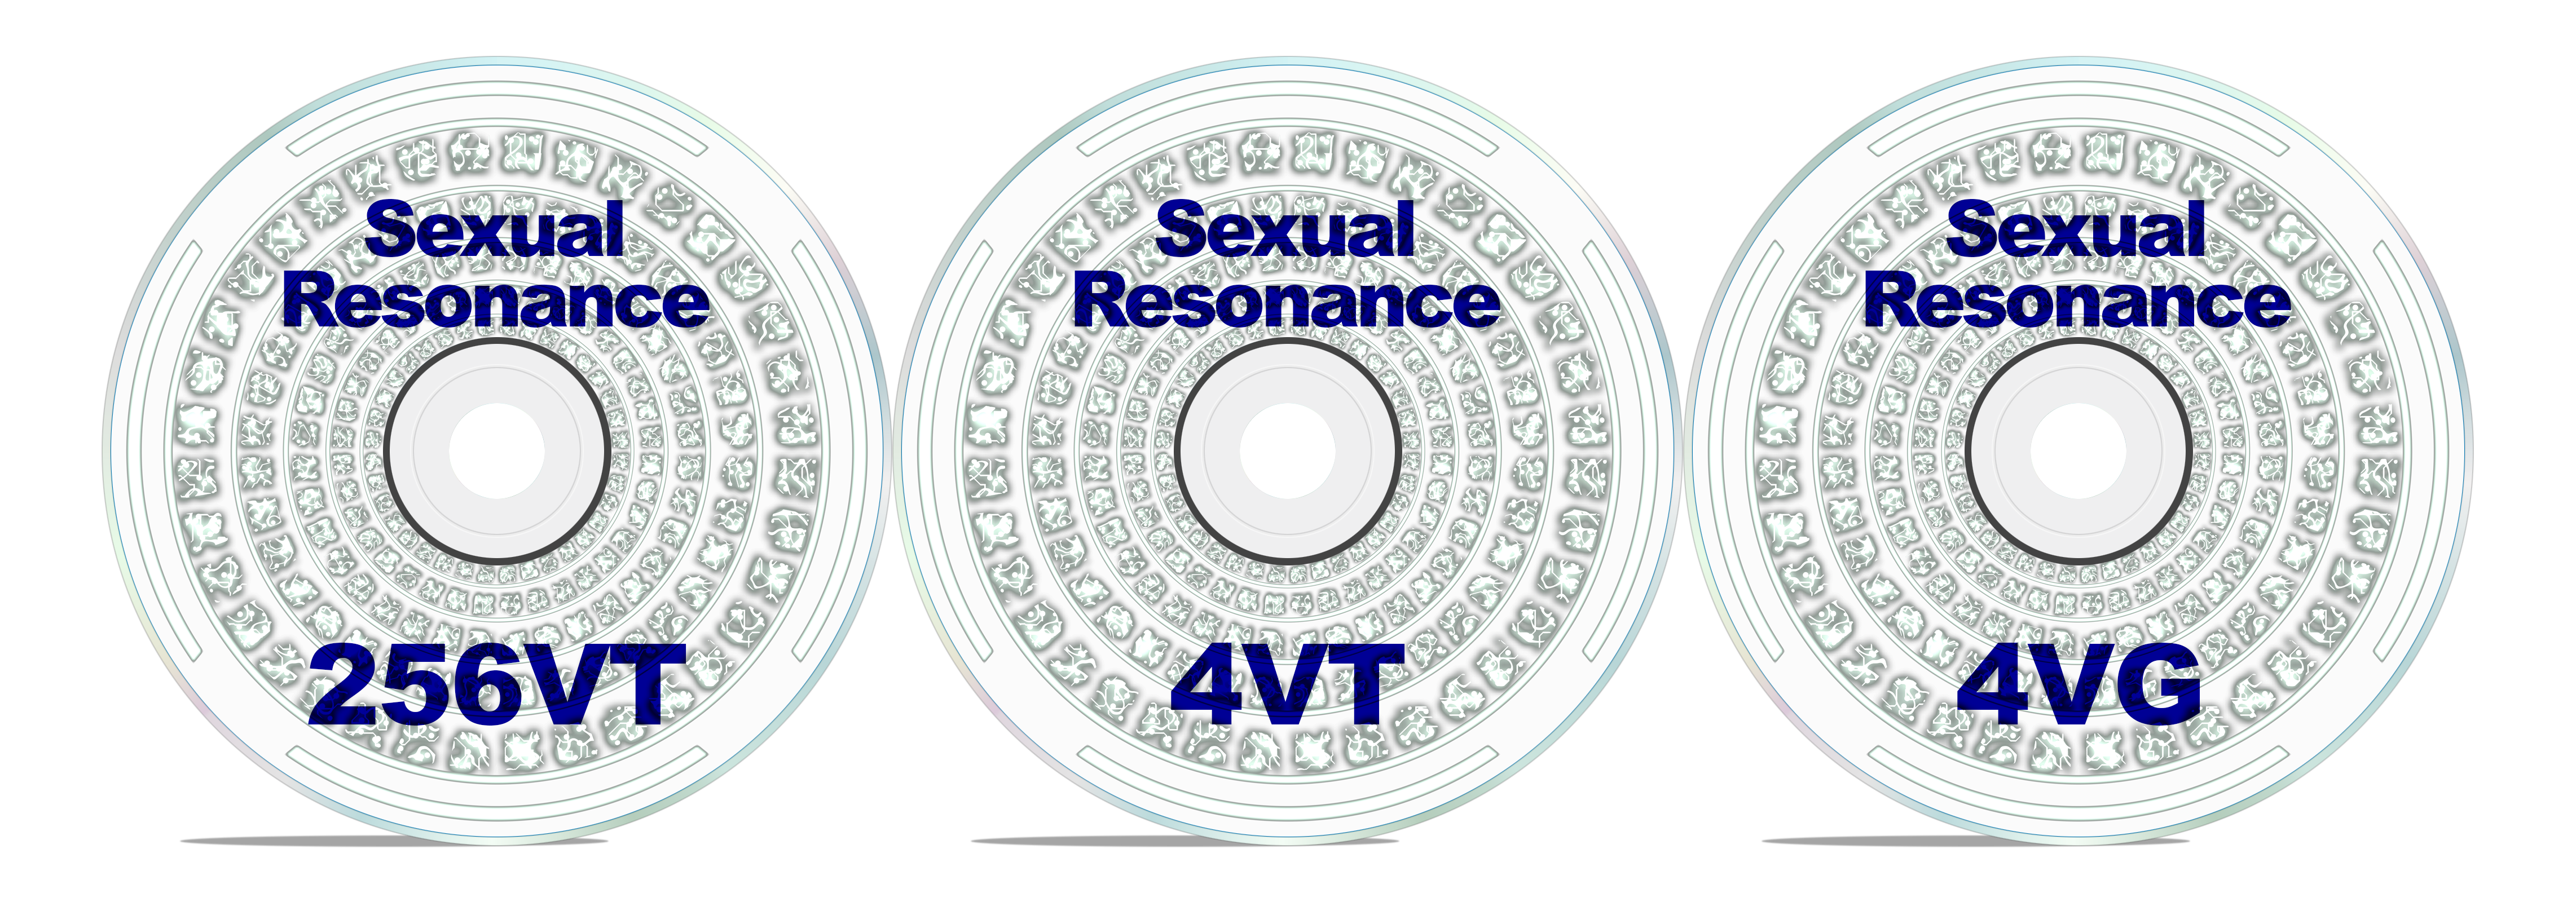 Sexual Resonance